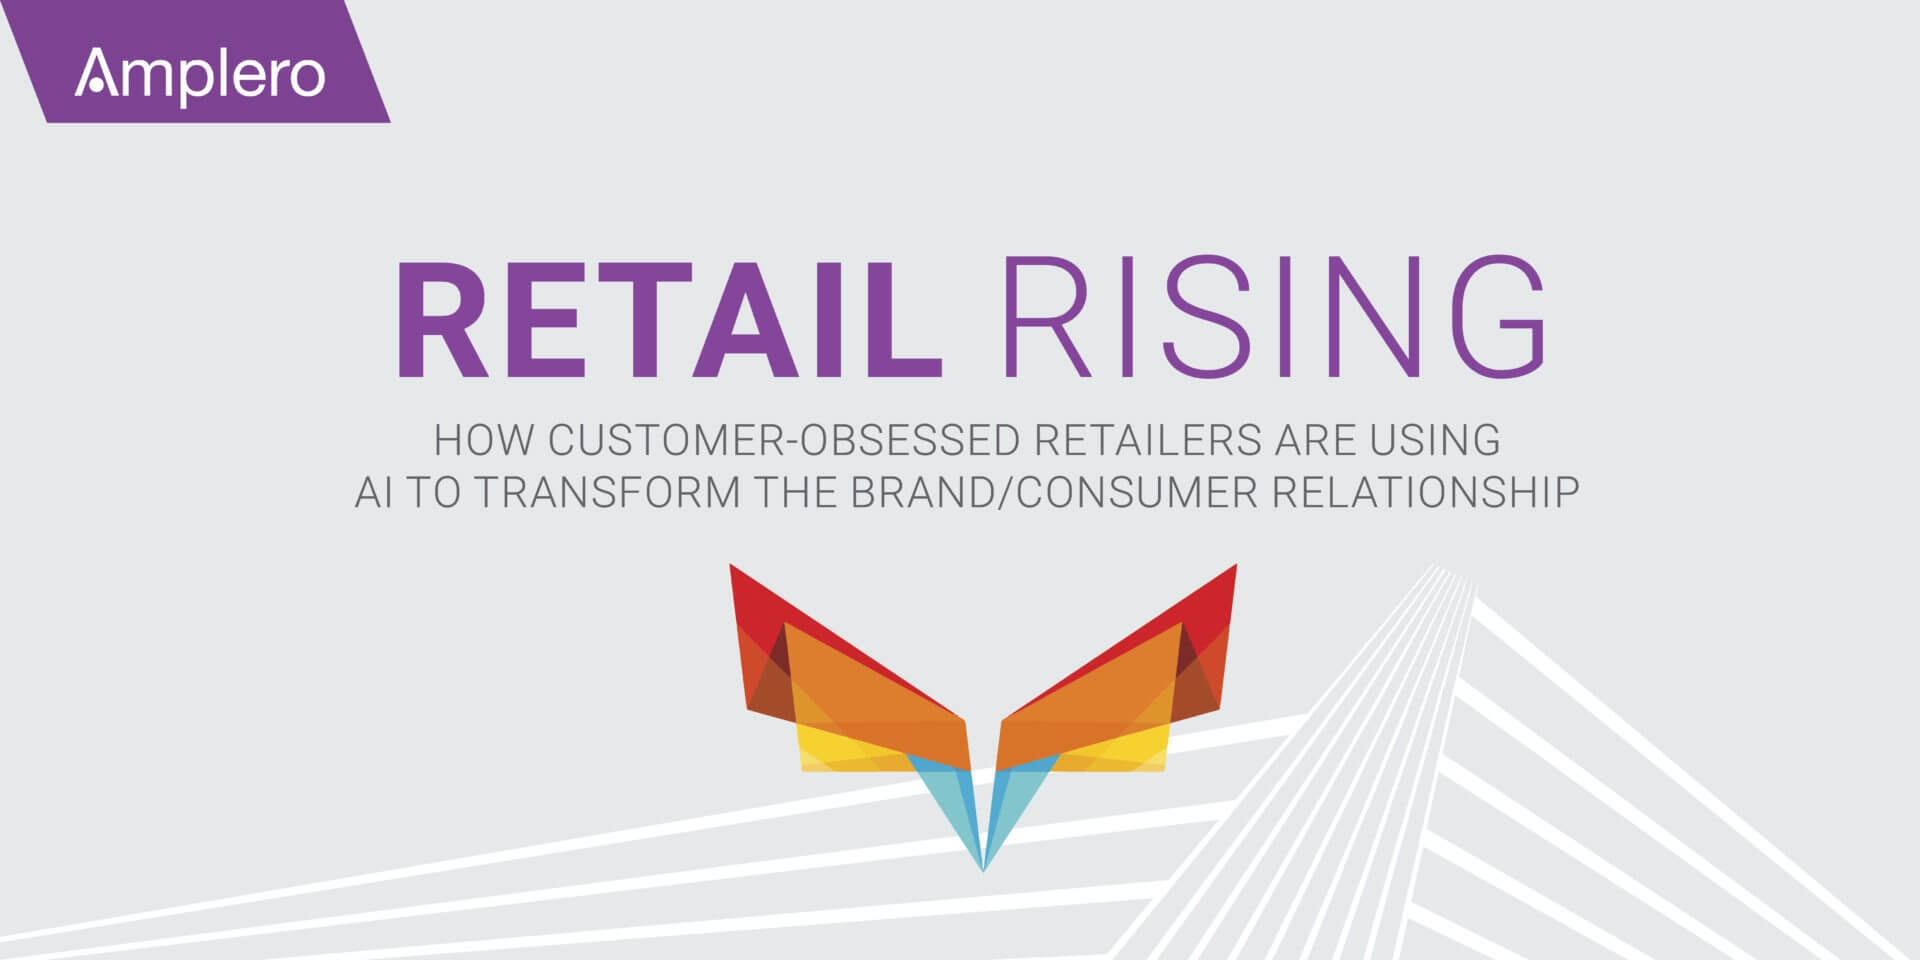 Three ways retailers can deliver meaningful 1:1 shopping experiences amidst the retail apocalypse through AI marketing